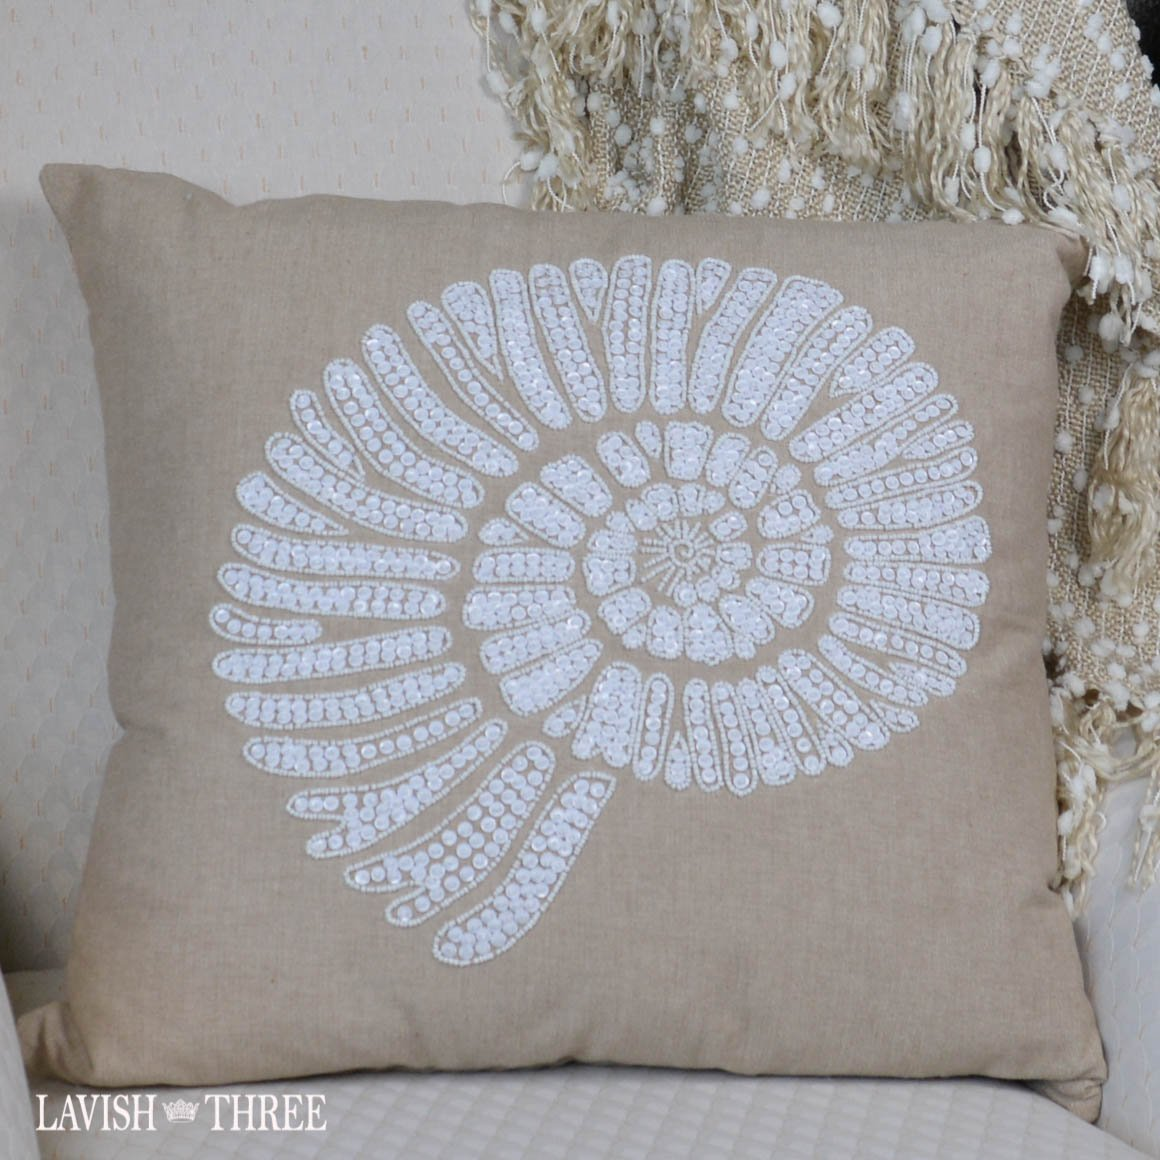 Beaded sea conch tan white decorative accent pillow Lavish three 3